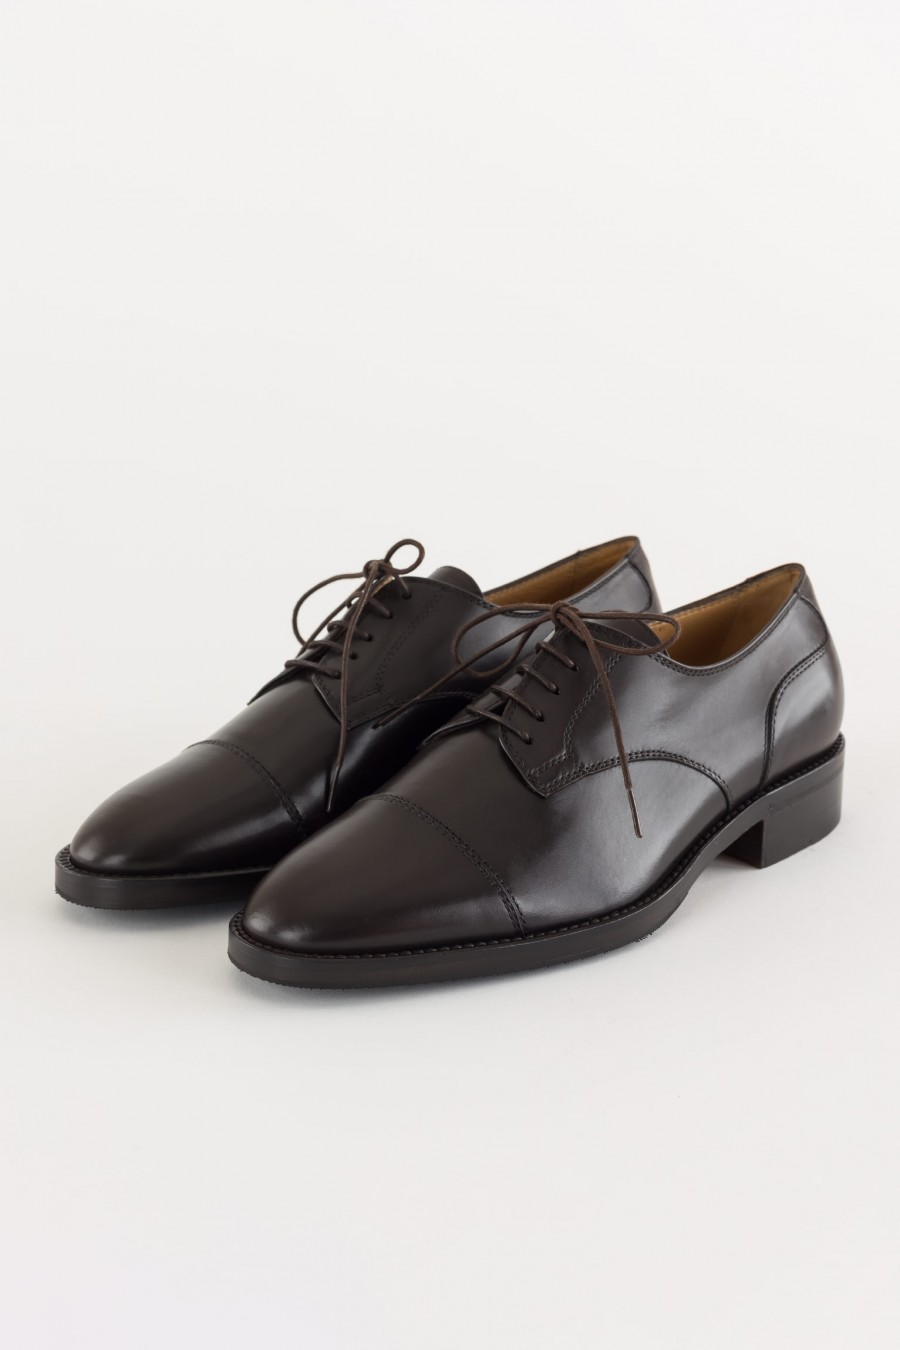 Deep brown oxford